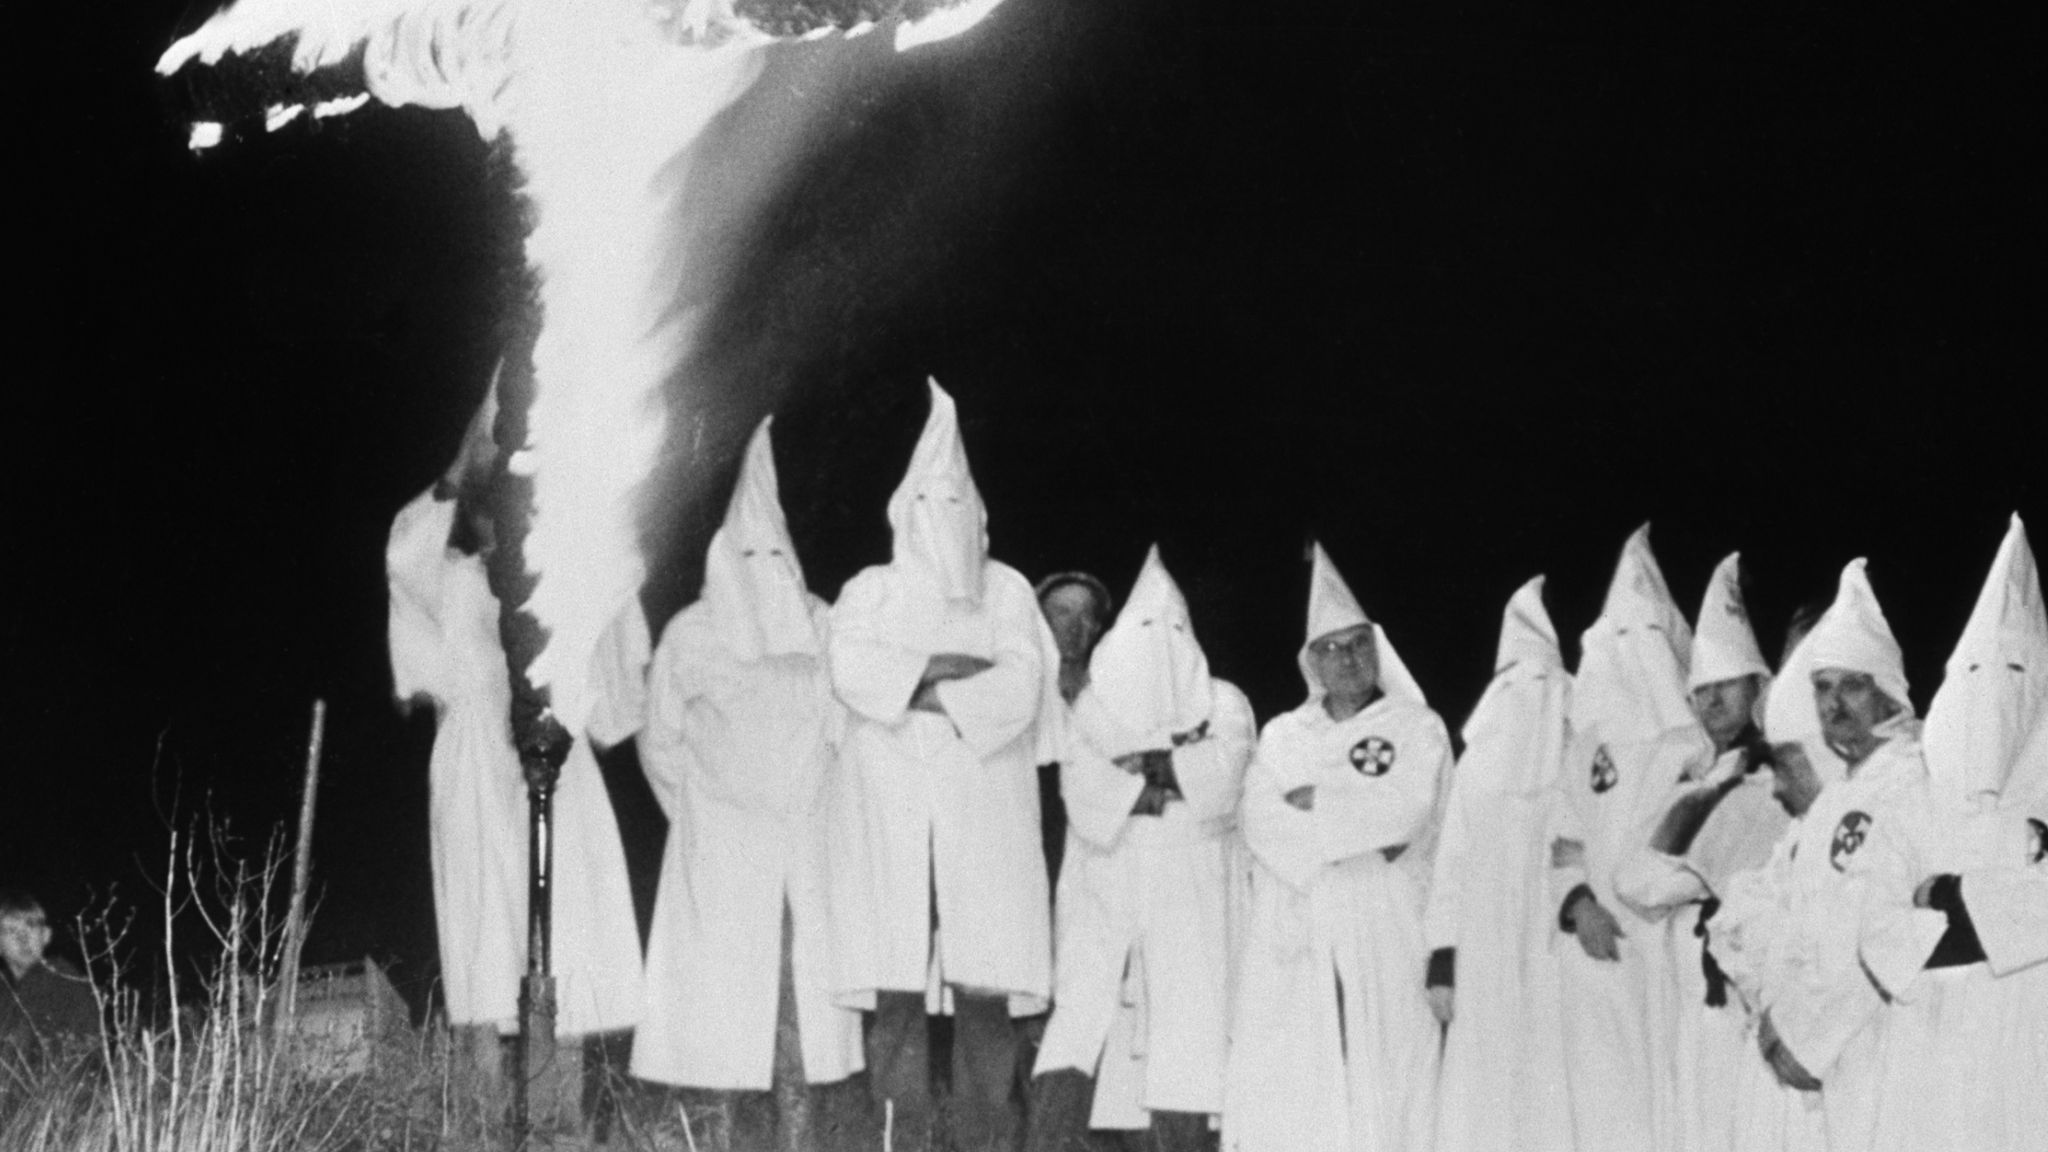 Coronavirus: Georgia suspends anti-mask law targeting Ku Klux Klan ...